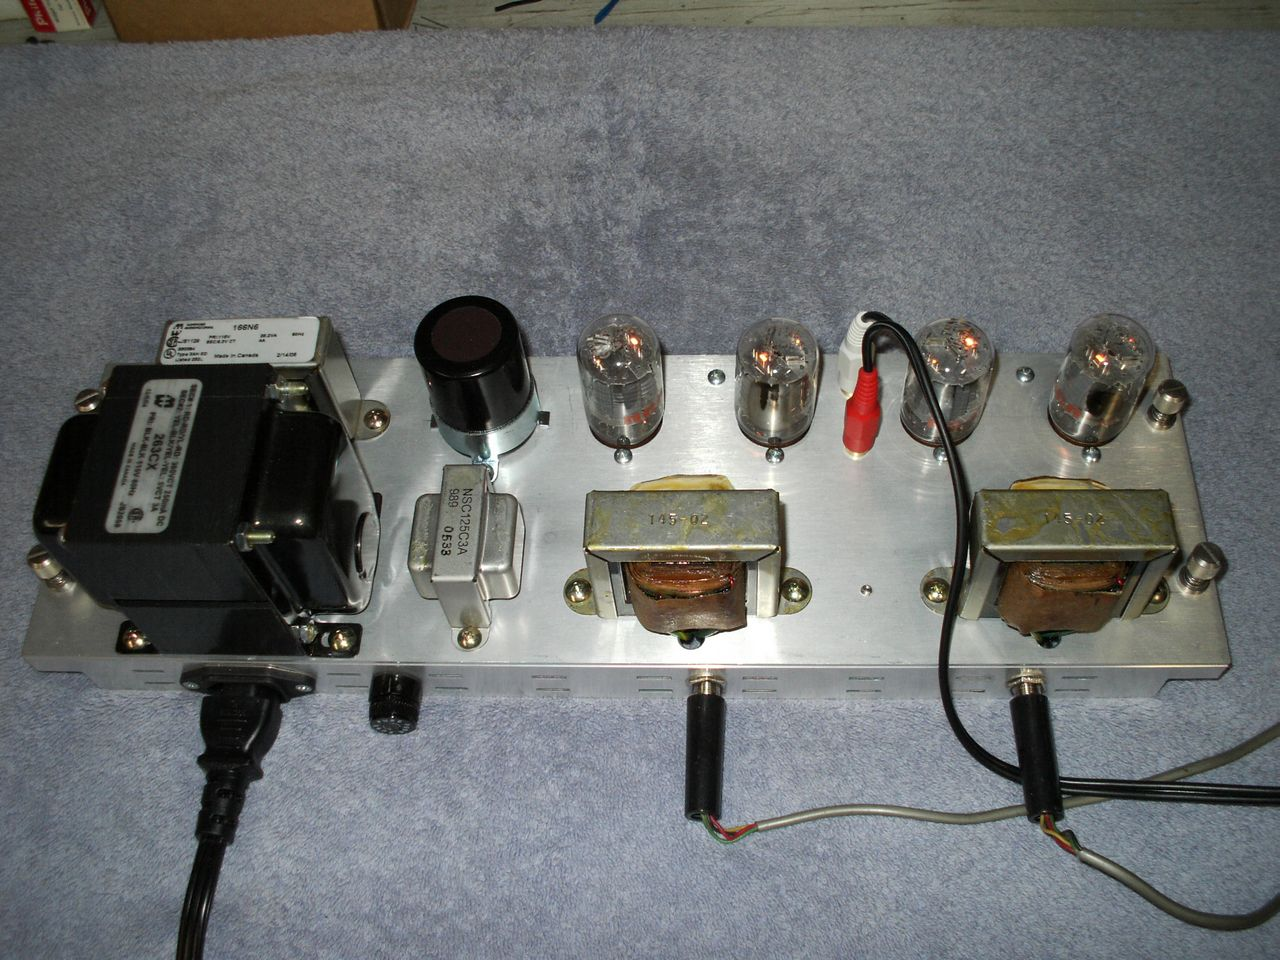 DIY 6T9 Vacuum Tube Amplifier